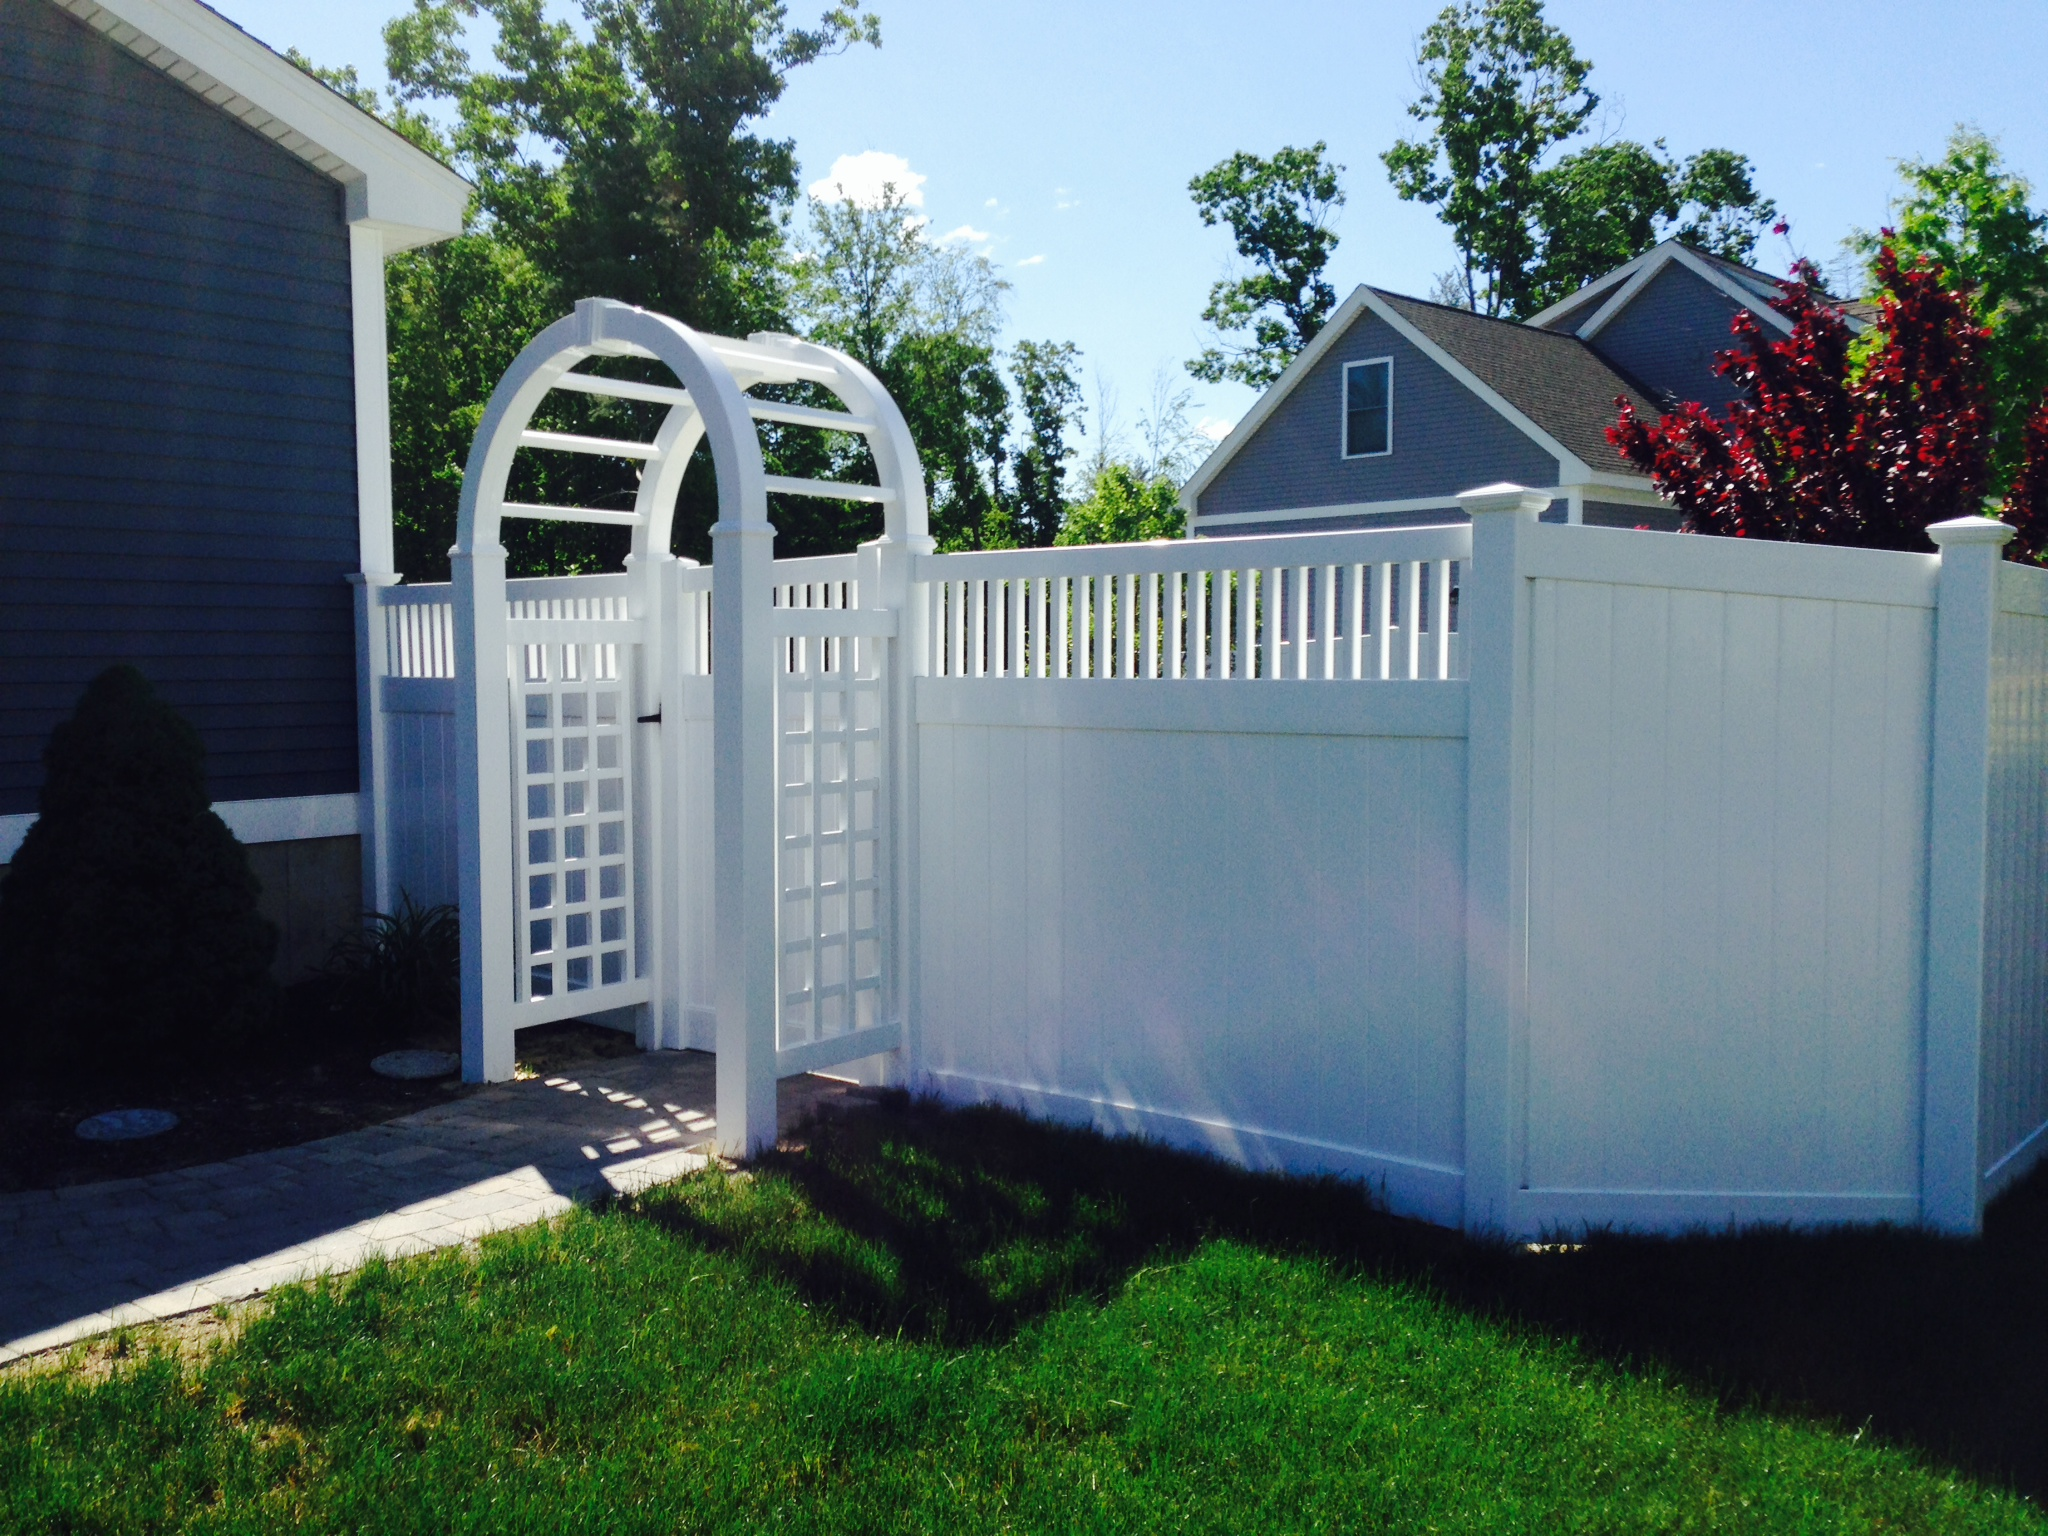 Privacy Fence Seacoast Nh Platinum Fence Hampton Nh 03842